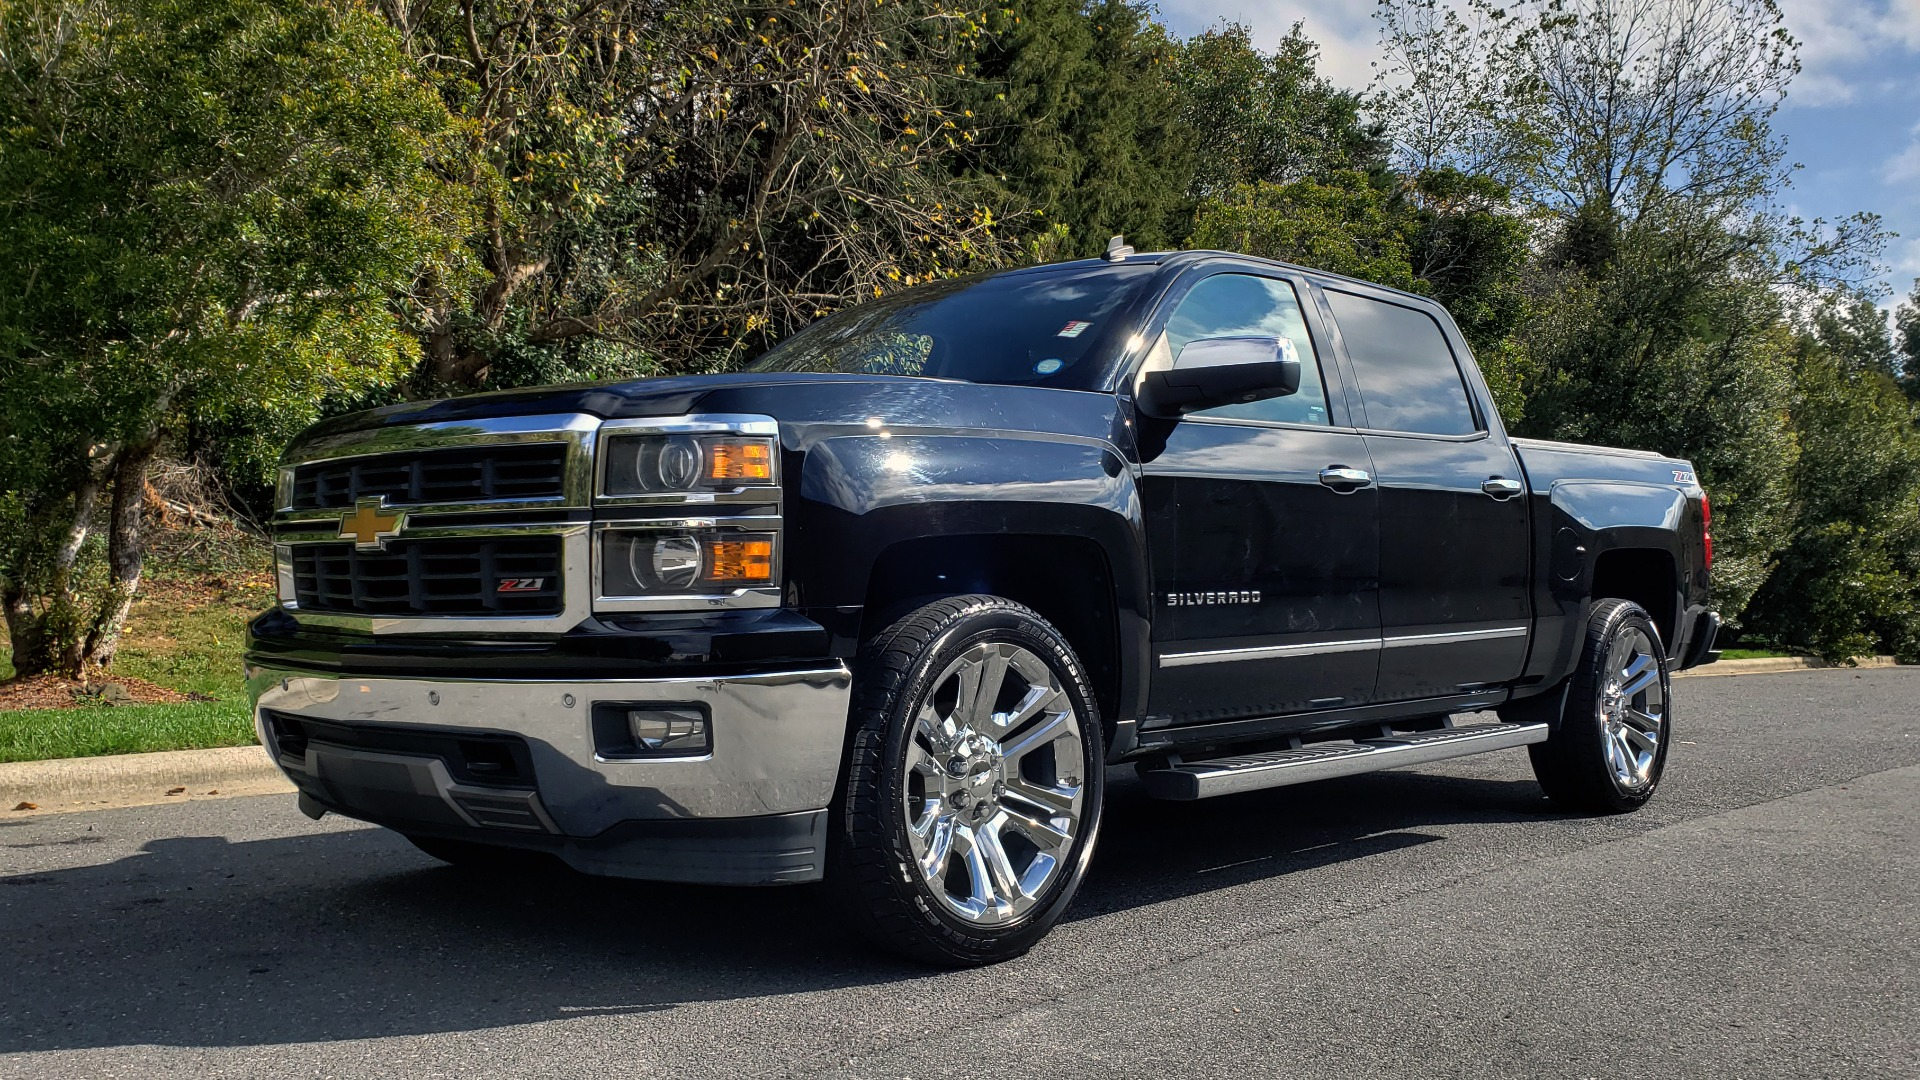 Used 2014 Chevrolet SILVERADO 1500 CREWCAB / LTZ PLUS PKG / 4WD / 2LZ / NAV / BOSE / REARVIEW for sale Sold at Formula Imports in Charlotte NC 28227 1